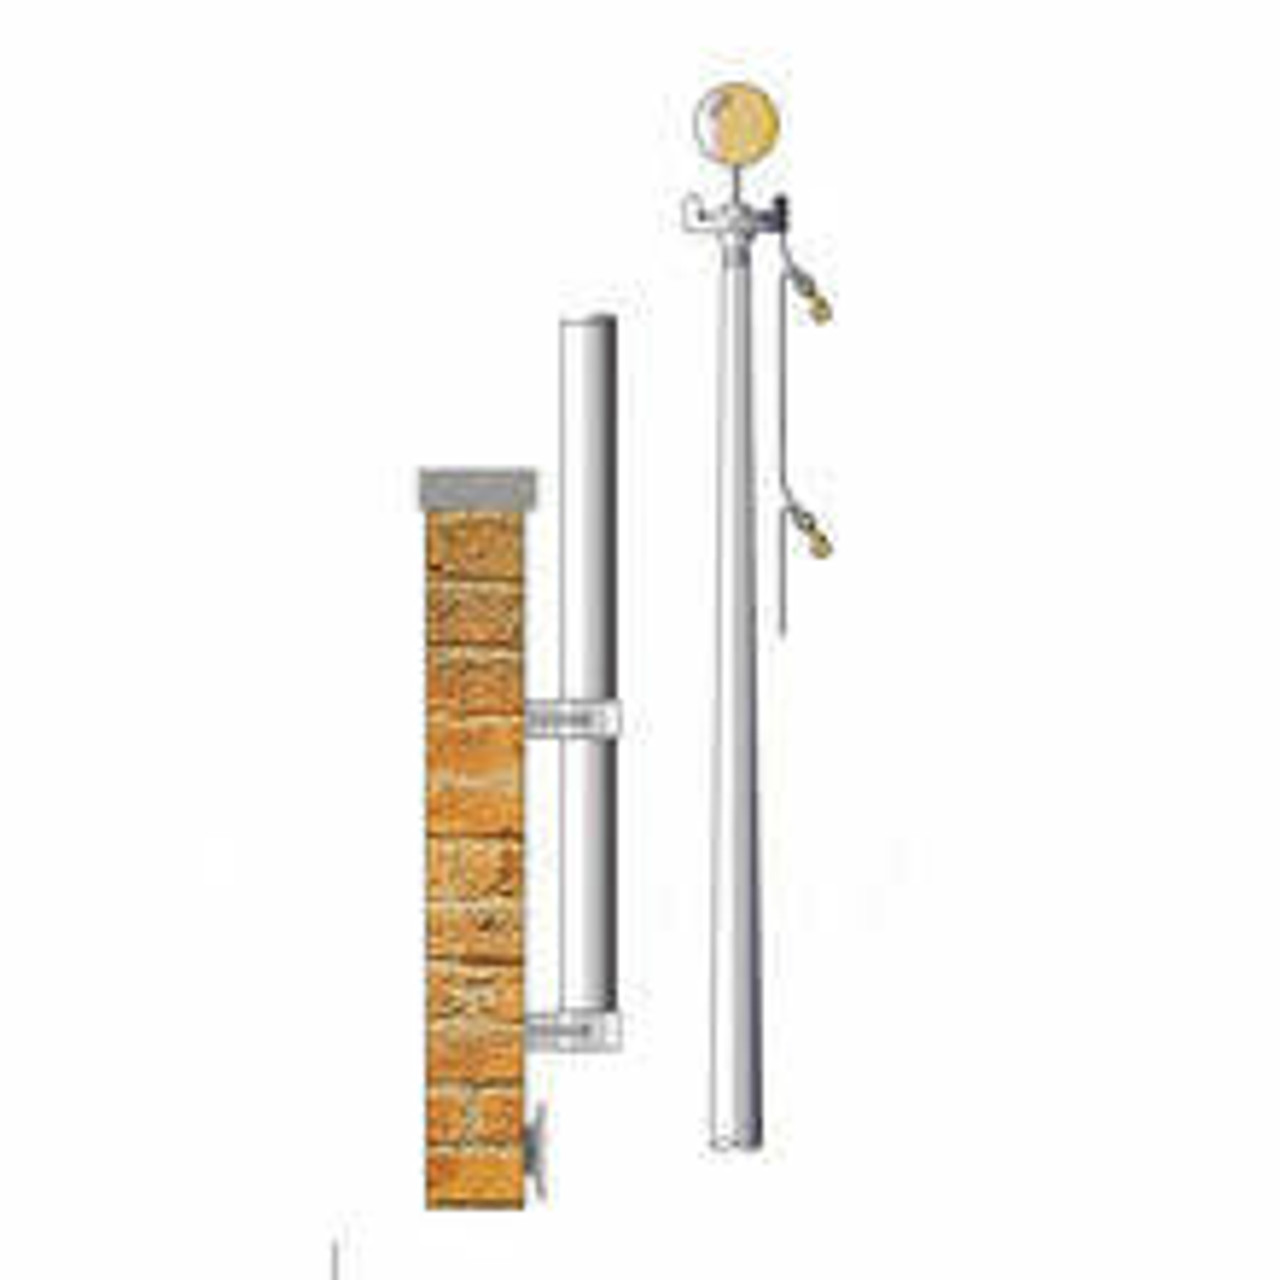 Design of a 22 Vertical Wall Mounted Flagpole EVWAF22 with a metallic pole mounted to a brick wall next to a metallic pole with a halyard attached to a truck and a gold finial.